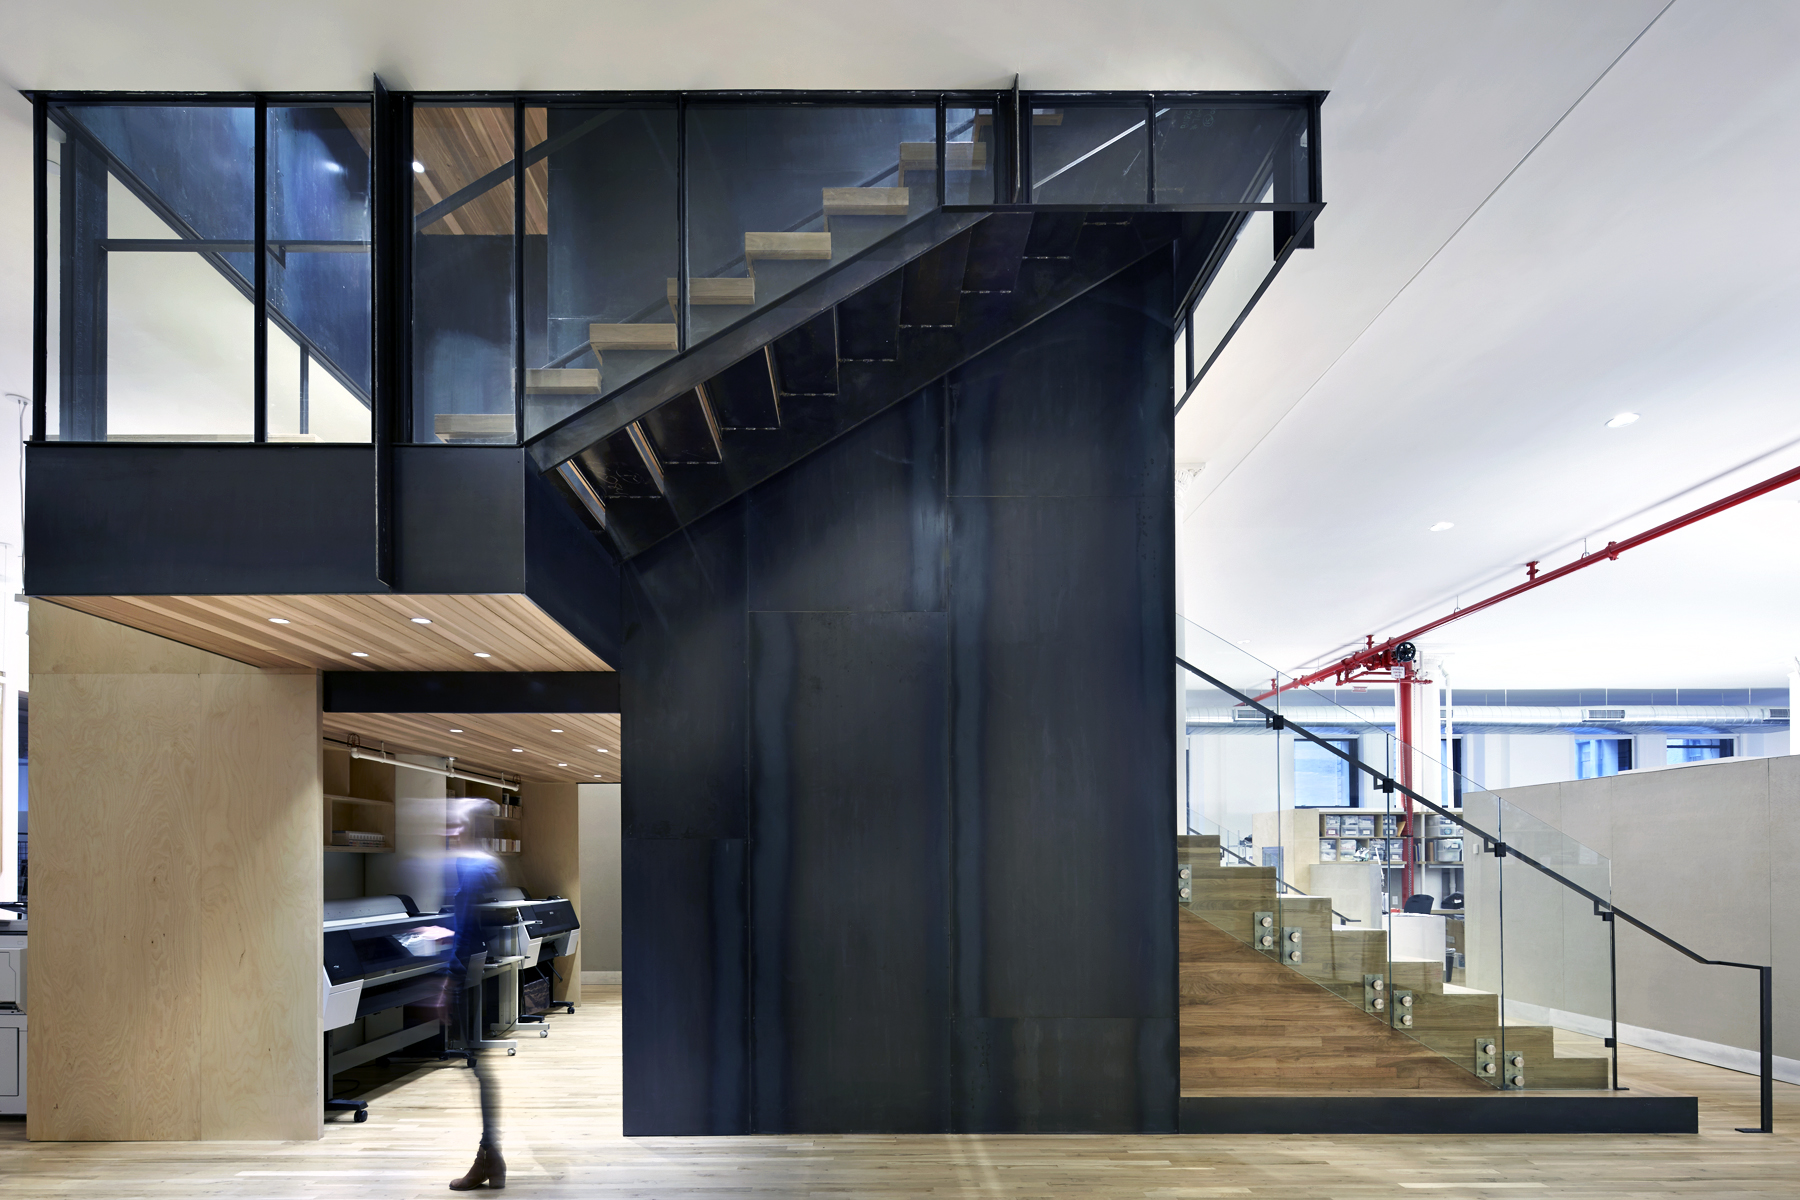 res4-resolution-4-architecture-modern-commercial-express-office-design-studio-interior-14.jpg